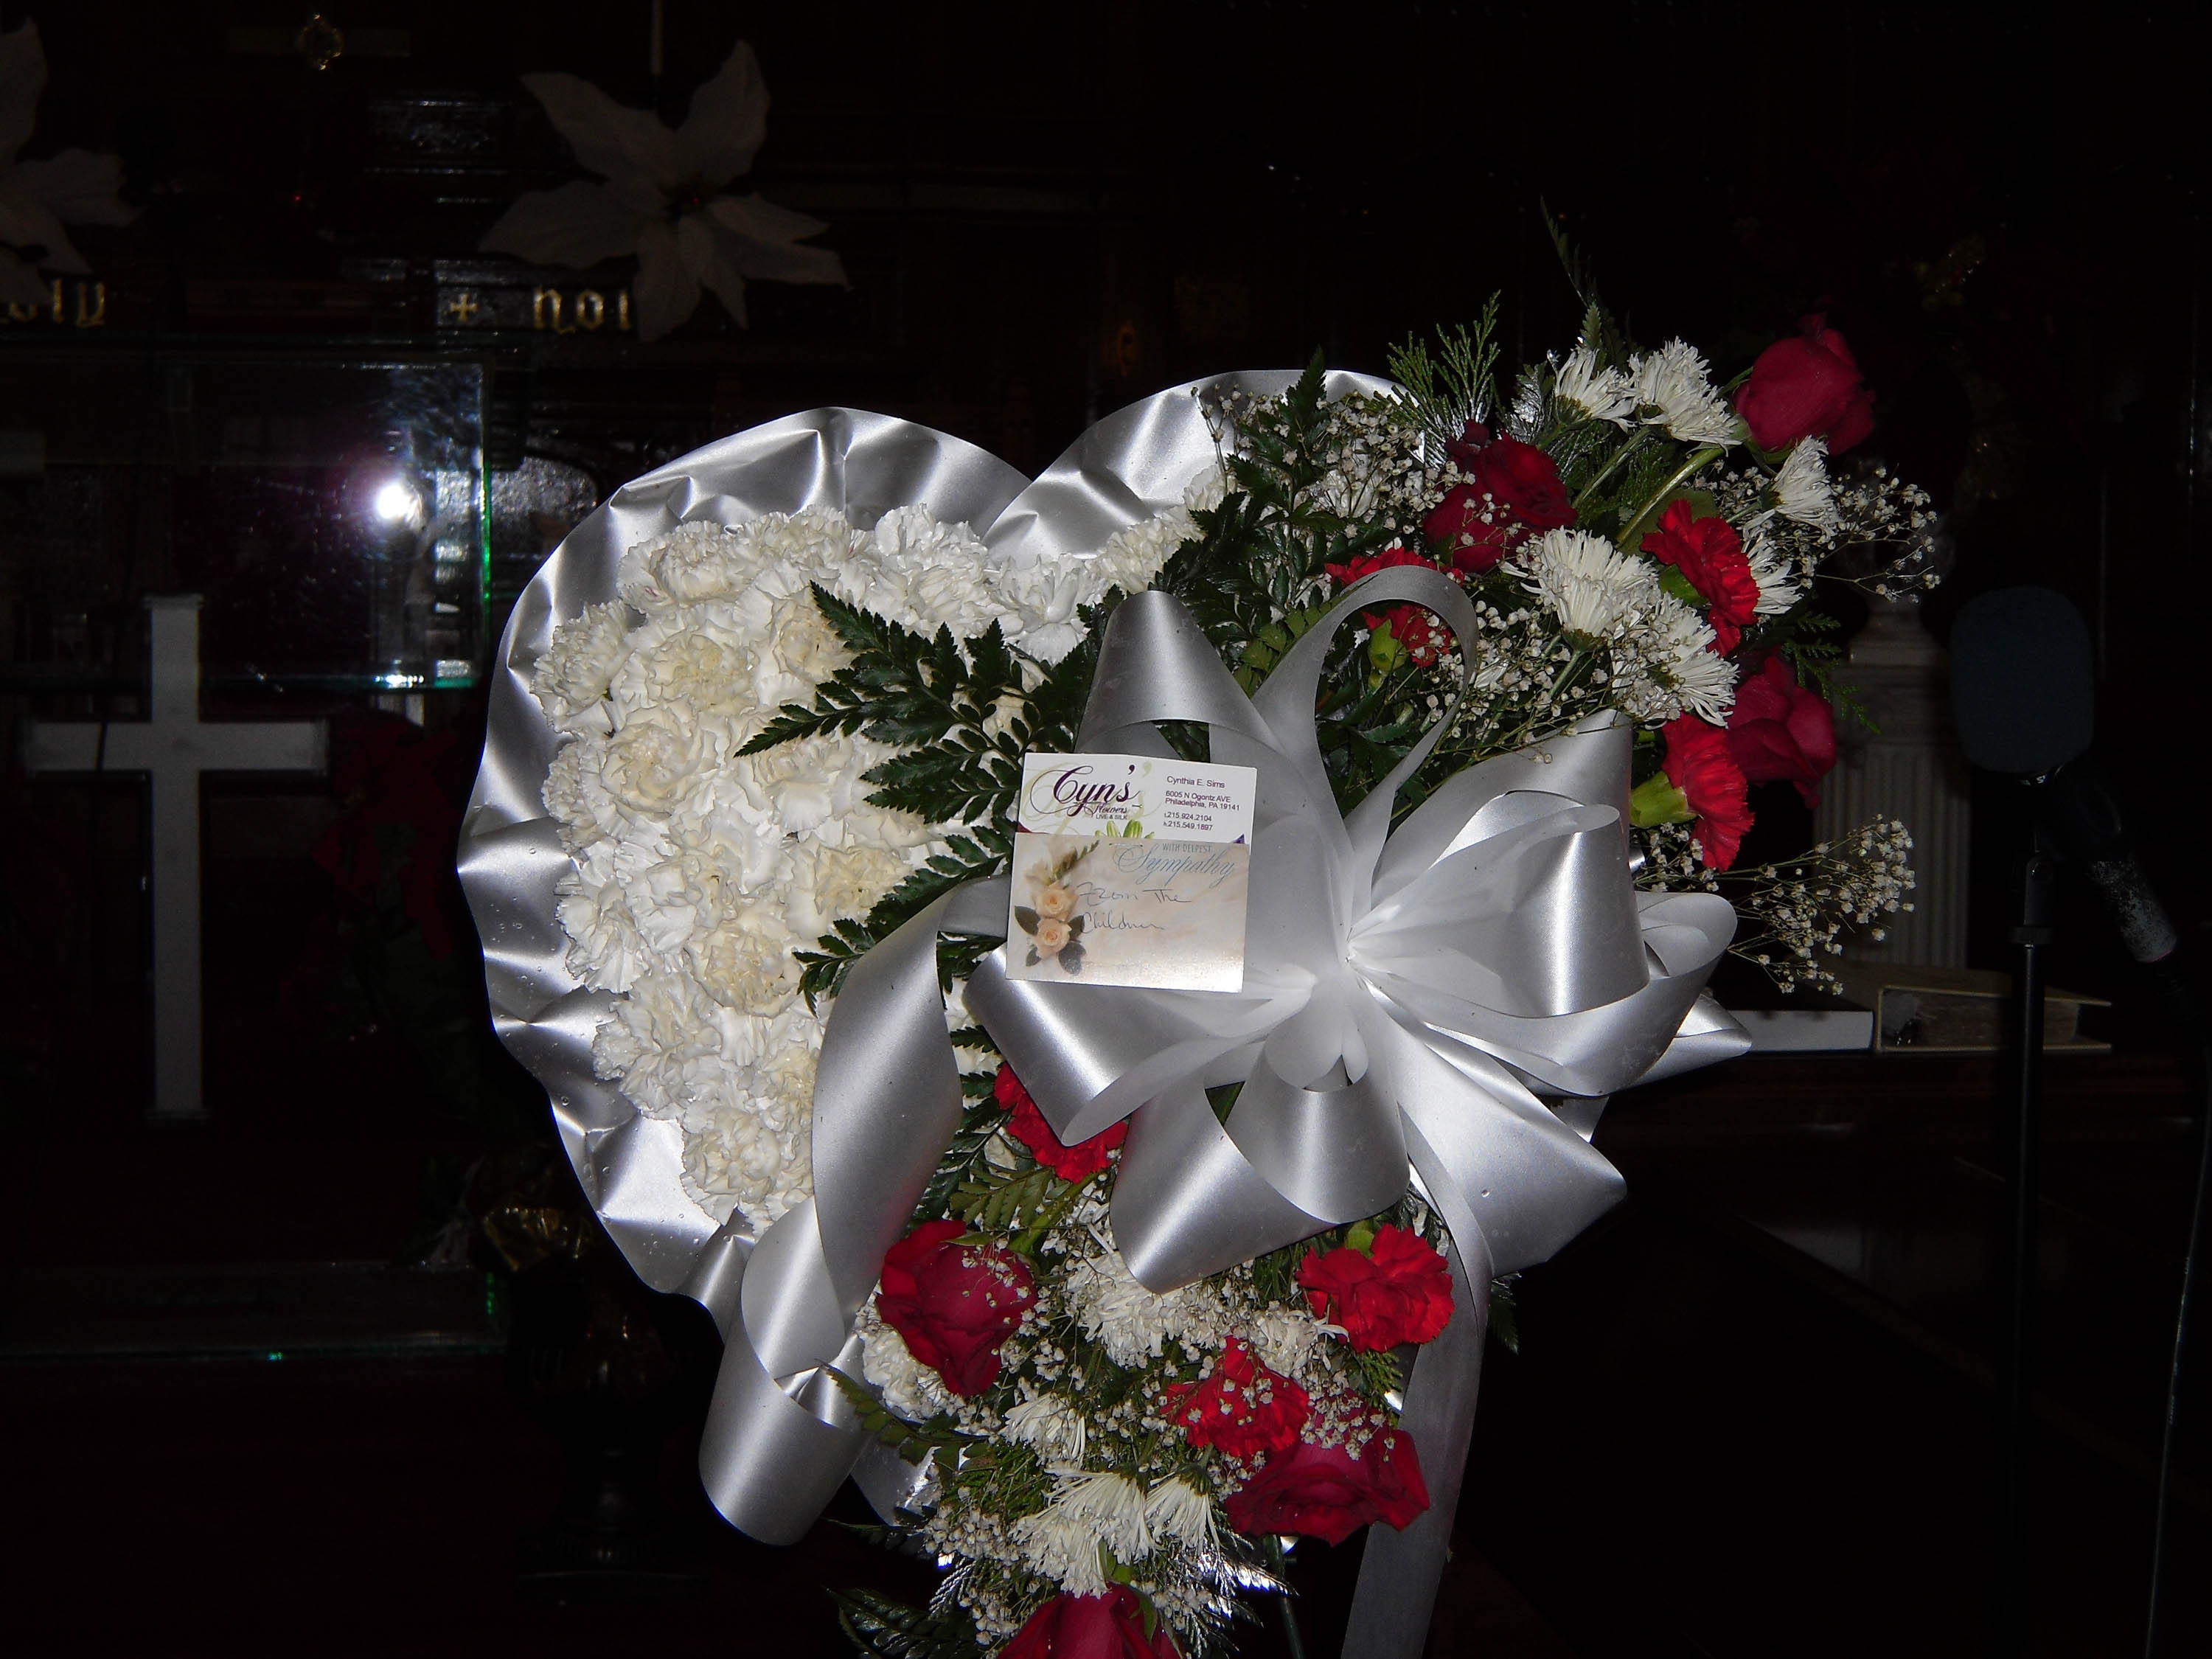 Cyn's Silks-Memorial Bouquets